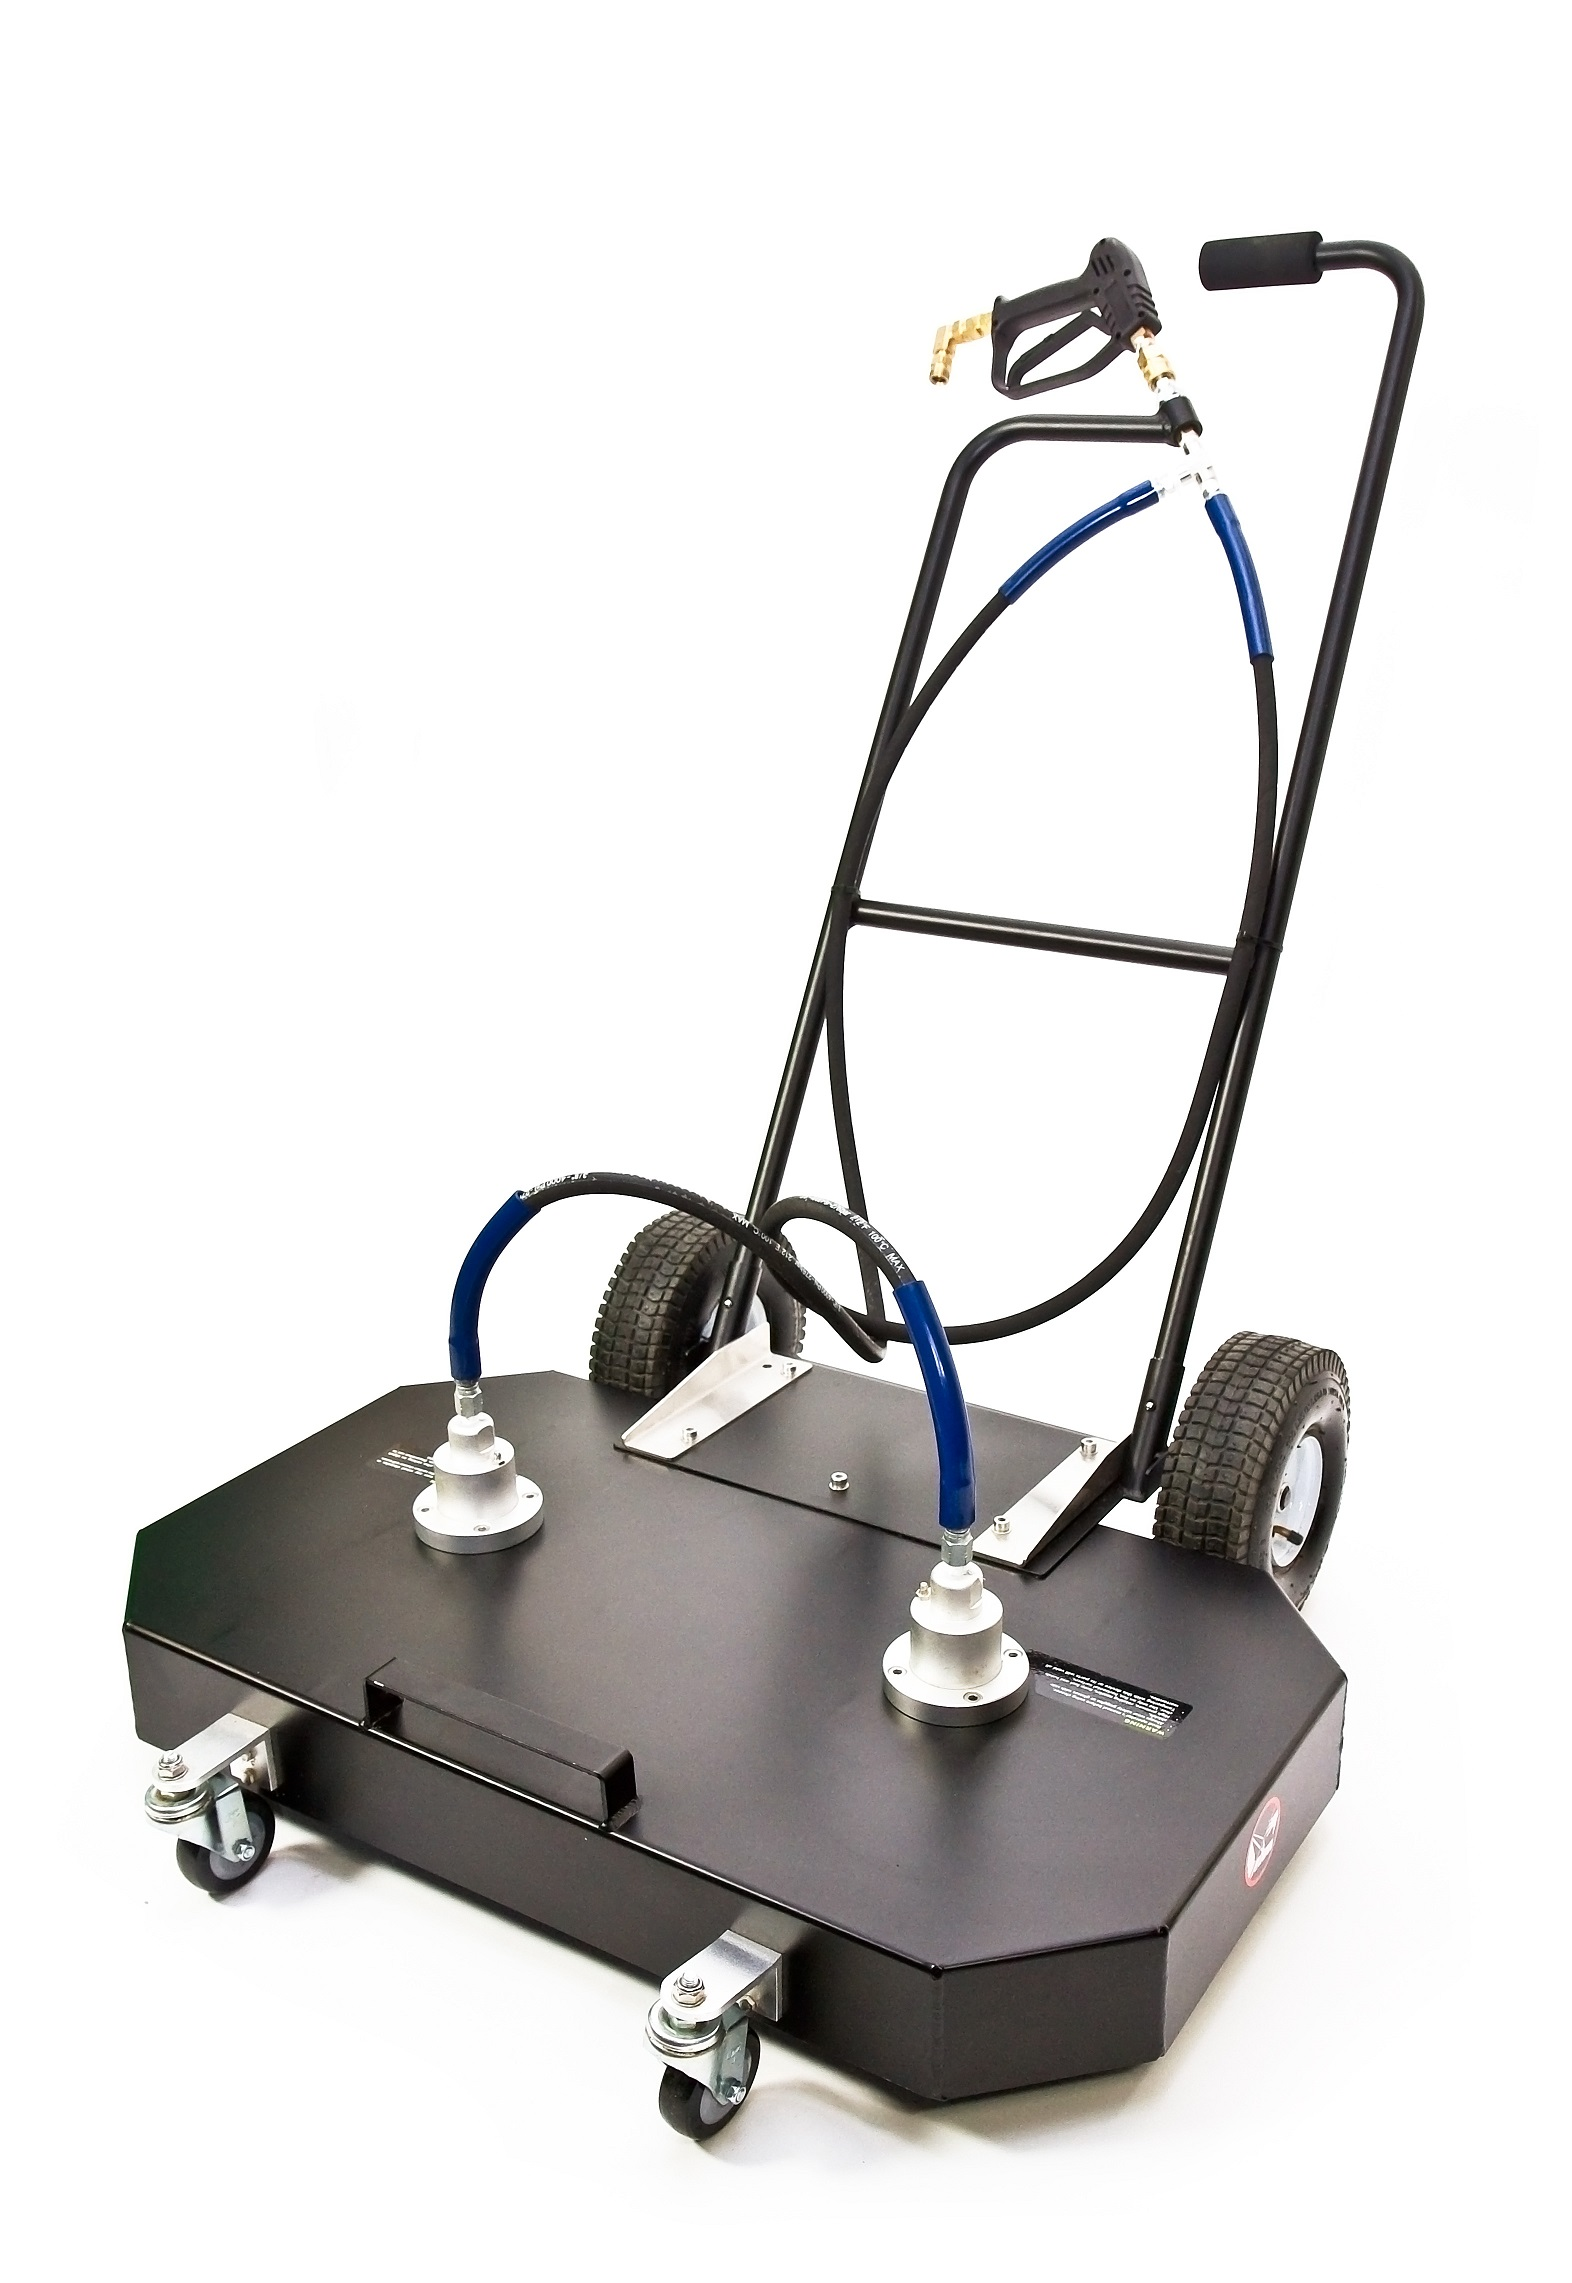 The Spinaclean 36 Inch Twin Double Rotary Arm Flat Surface